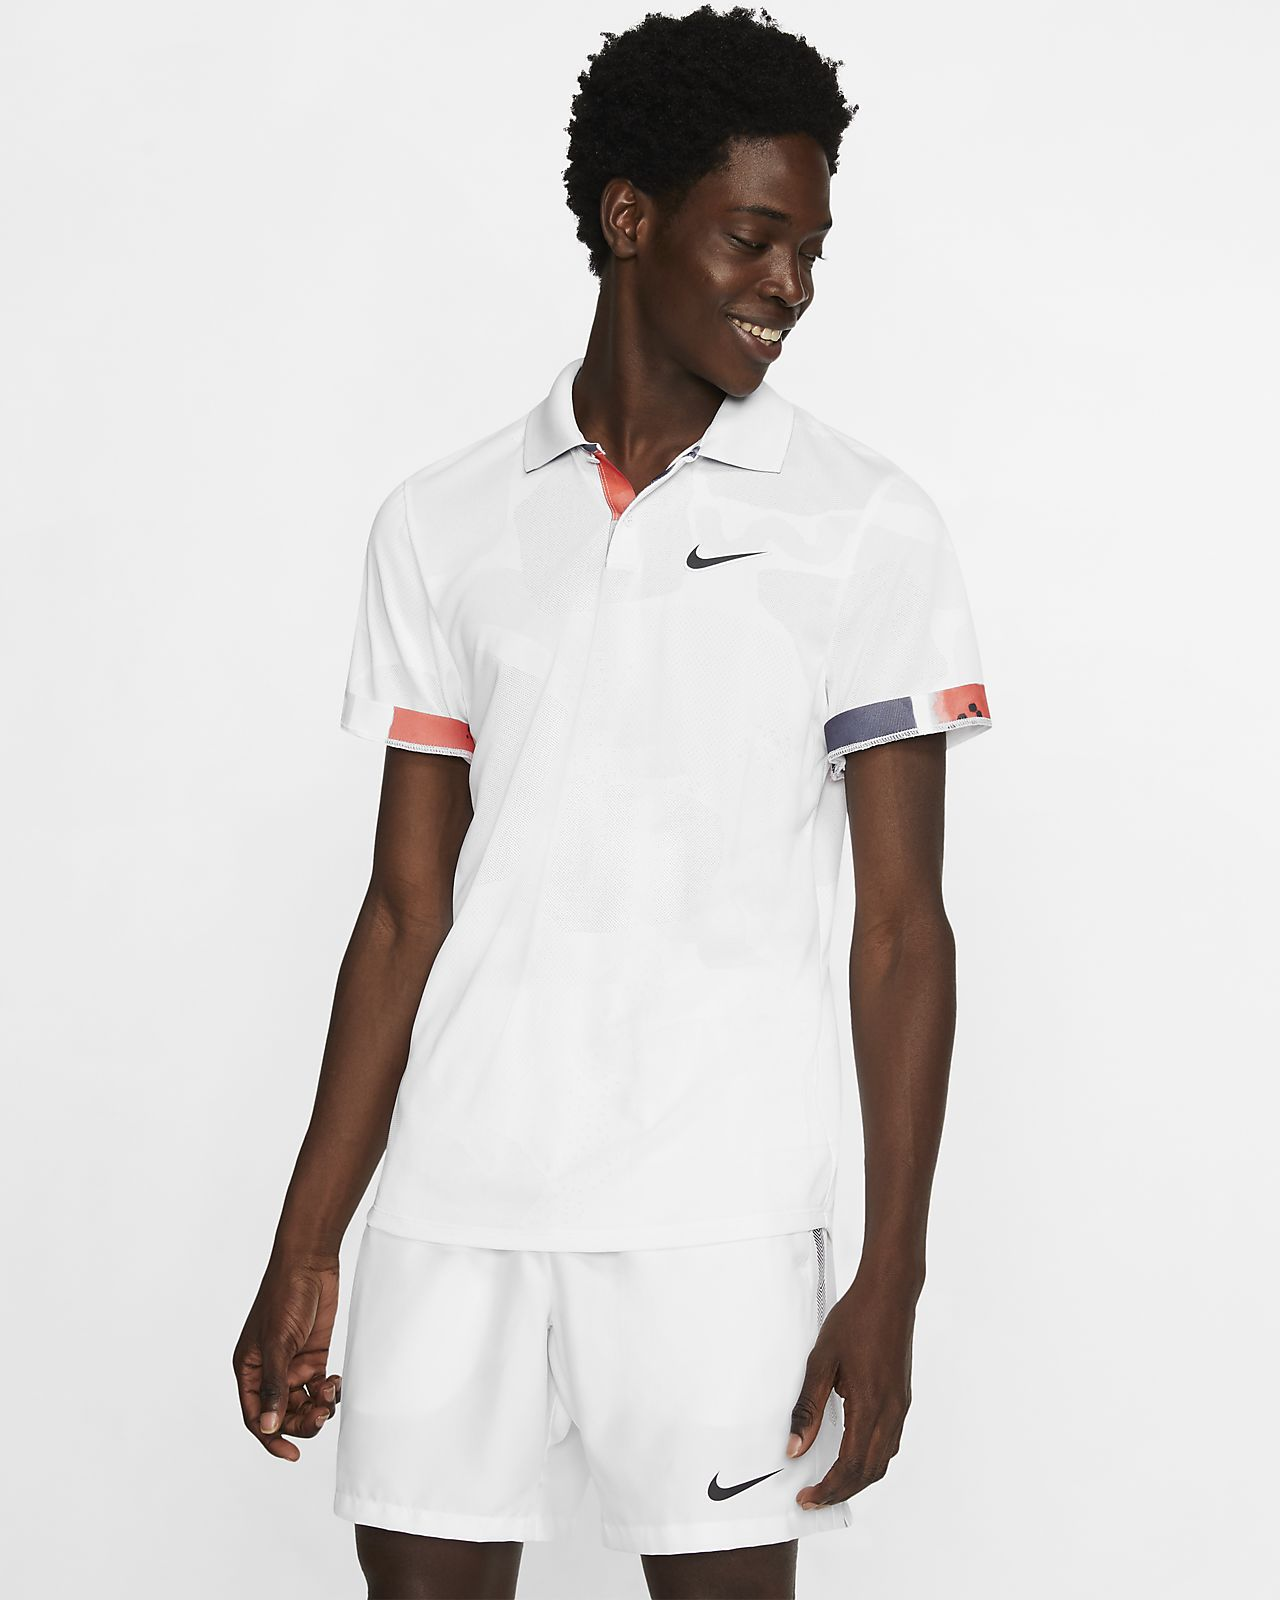 NikeCourt Breathe Advantage Tennis Poloshirt für Herren